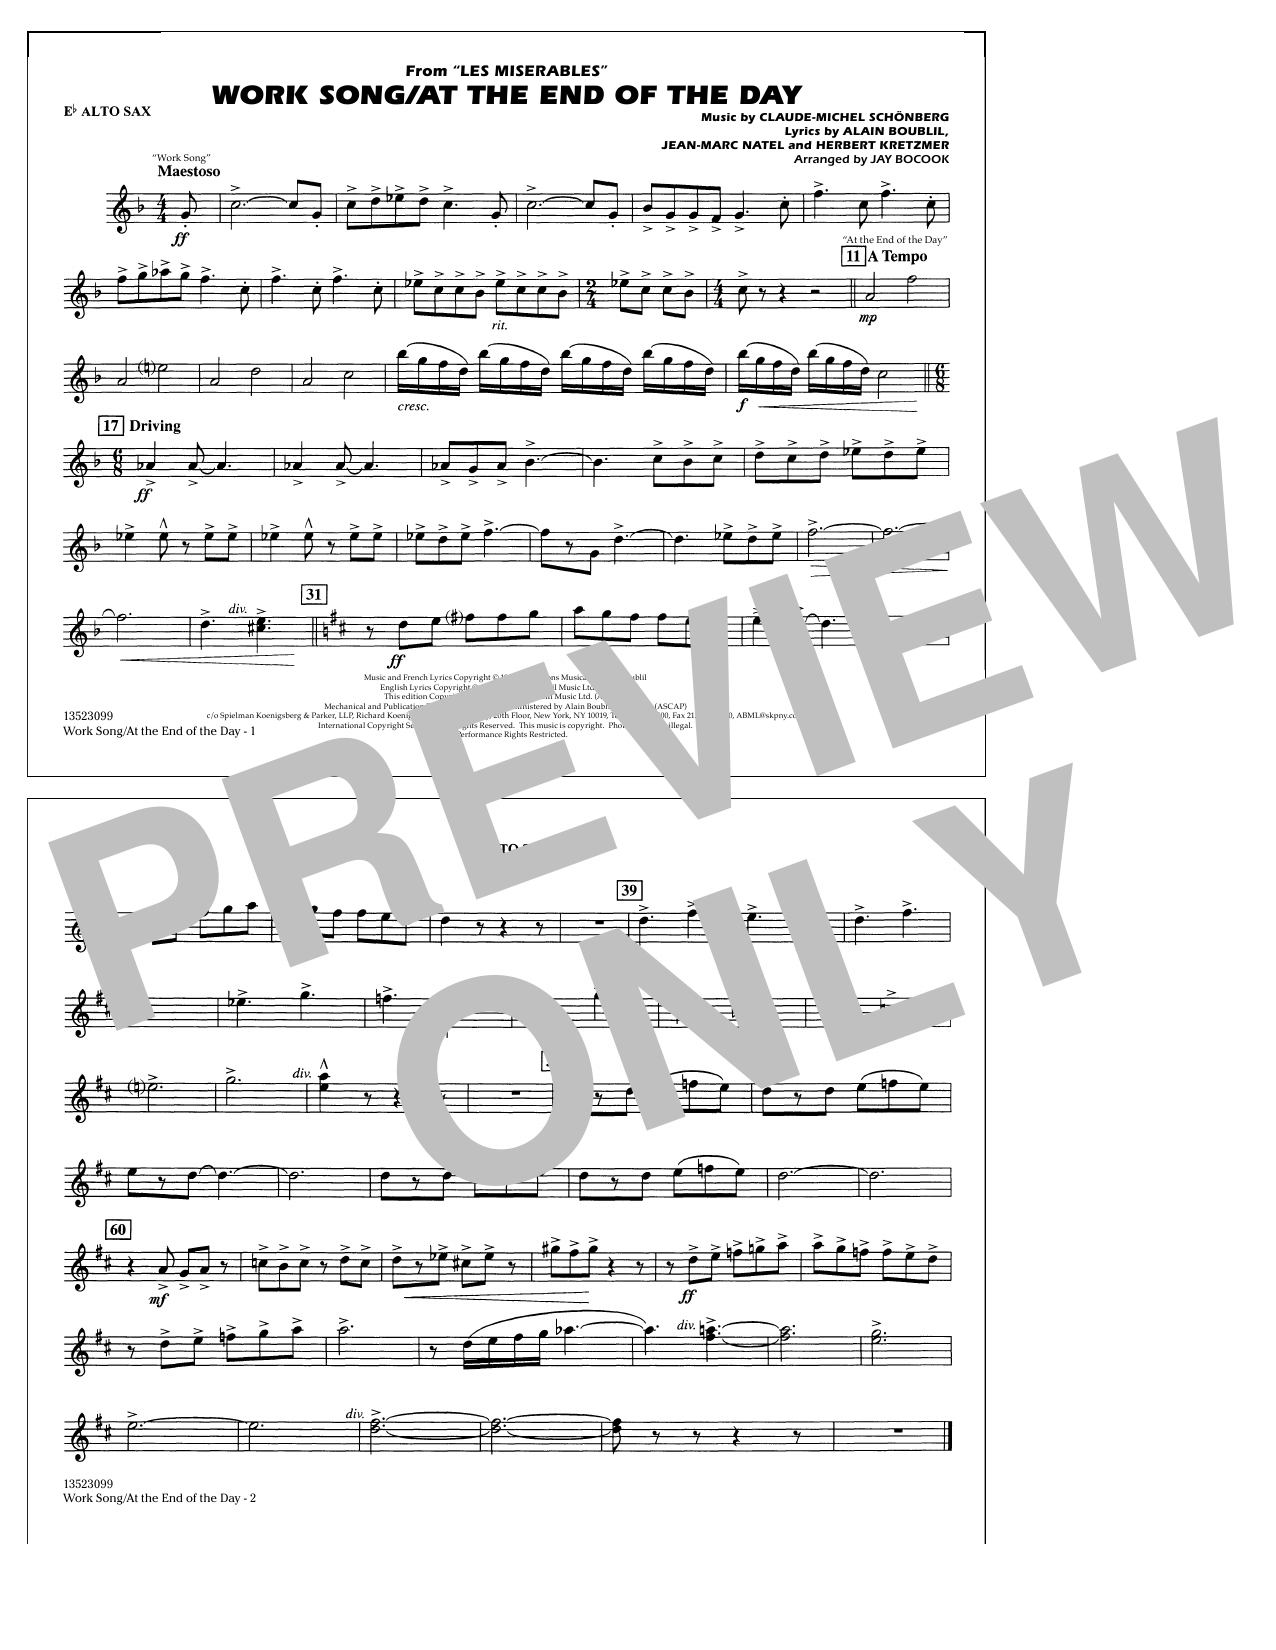 Work Song/At the End of the Day (Les Misérables) (arr. Jay Bocook) - Eb Alto Sax (Marching Band)